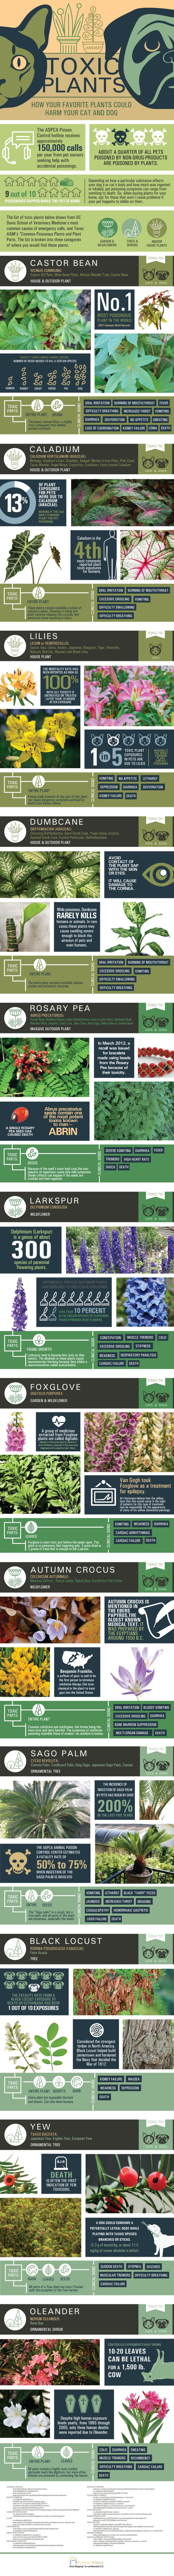 12 Most Common Plants That Are Toxic to Cats and Dogs ; This visual guide, from Pots Planters and More, provides information from the American Society for the Prevention of Cruelty to Animals (ASPCA), the UC Davis School of Veterinary Medicine, &Texas A&M regarding toxic plants that will harm or kill your pets. Not only does it list the plants, like castor bean, dumbcane, and oleander, it also lists what parts of the plant are toxic, how much of it  is considered to be harmful, & warning…